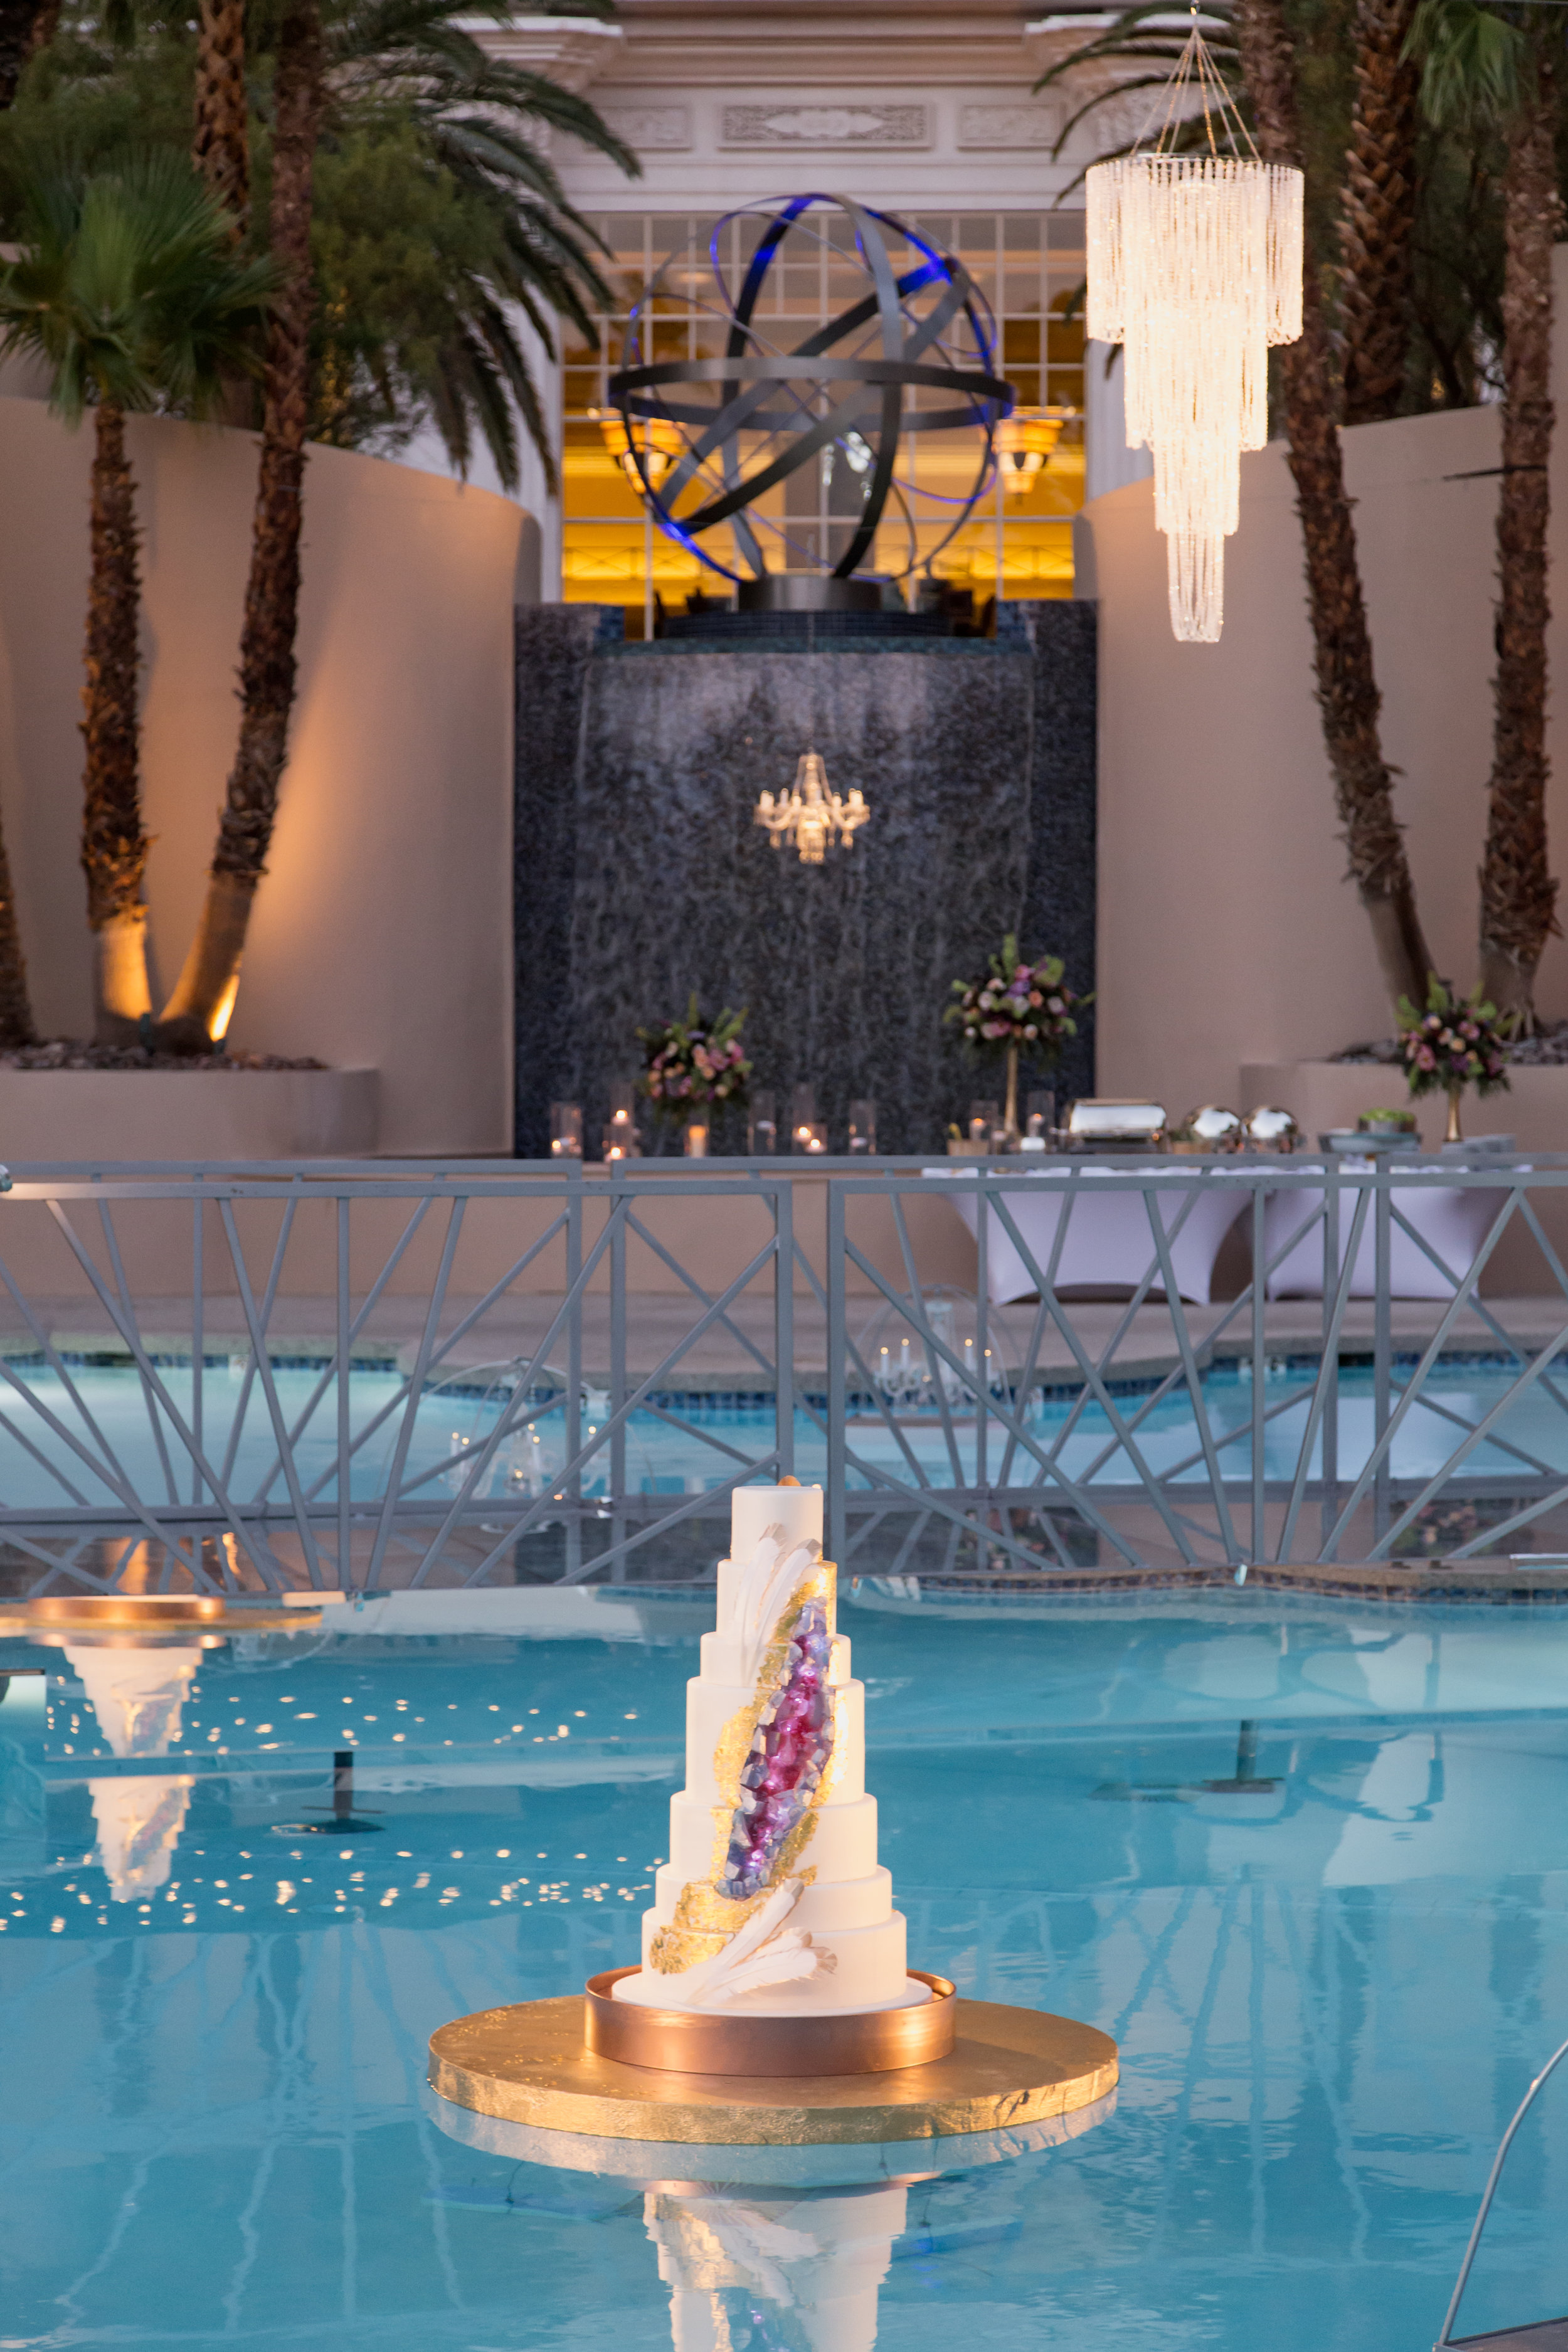 Floating wedding cake with geode design and chandeliers at poolside wedding in Las Vegas.Destination Wedding Planner  Andrea Eppolito ·Photos by  Adam Frazier Photography ·Floral and Decor by  Destinations by Design · Lighting by  LED Unplugged ·Venue · Invitations  Ceci New York  · Menus by  Alligator Soup